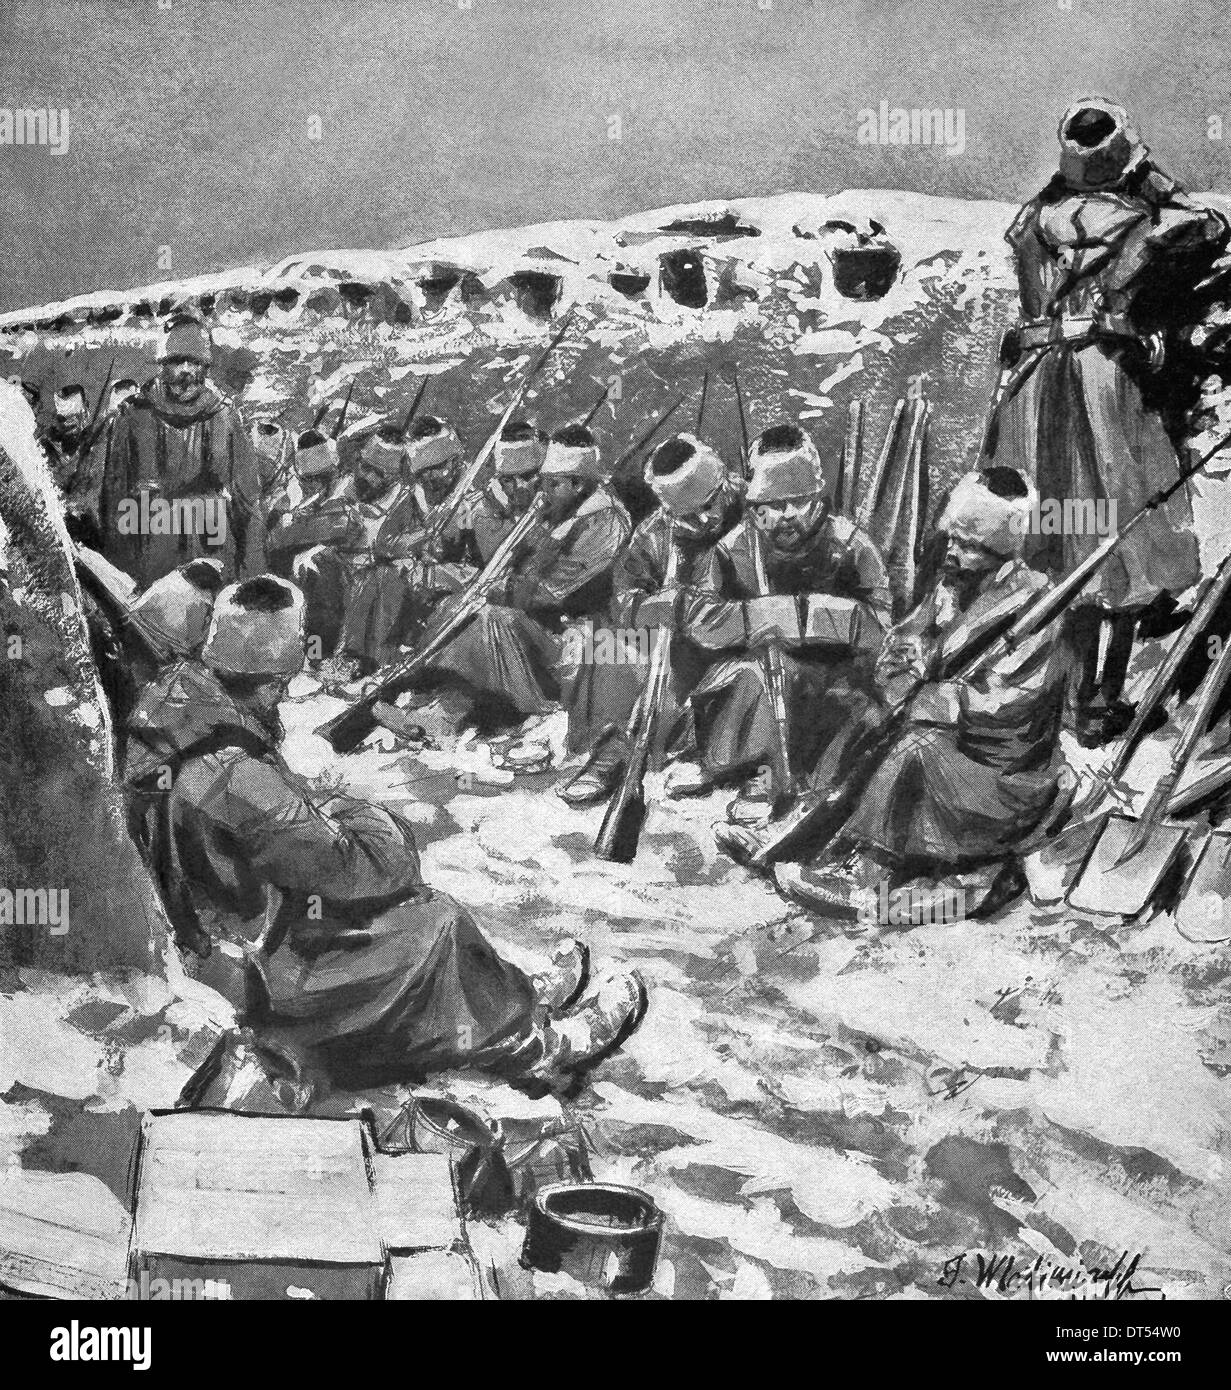 This illustration shows Russian troops in the trenches, waiting for a German attack, during World War I. - Stock Image